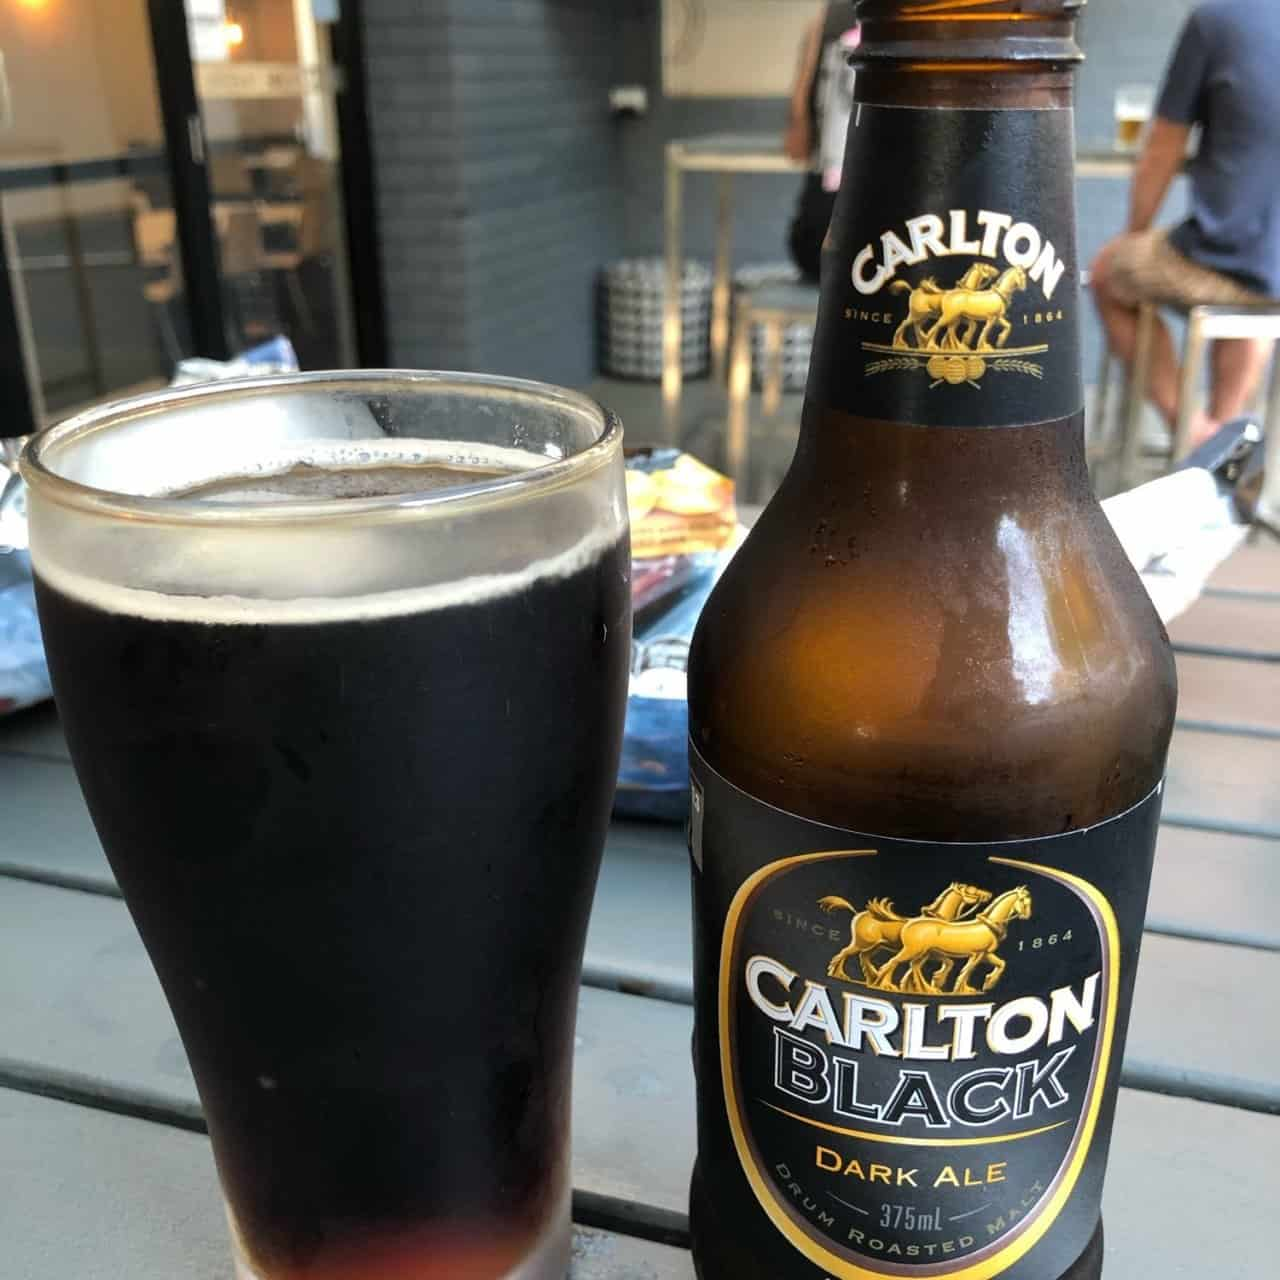 Carlton Black IPA